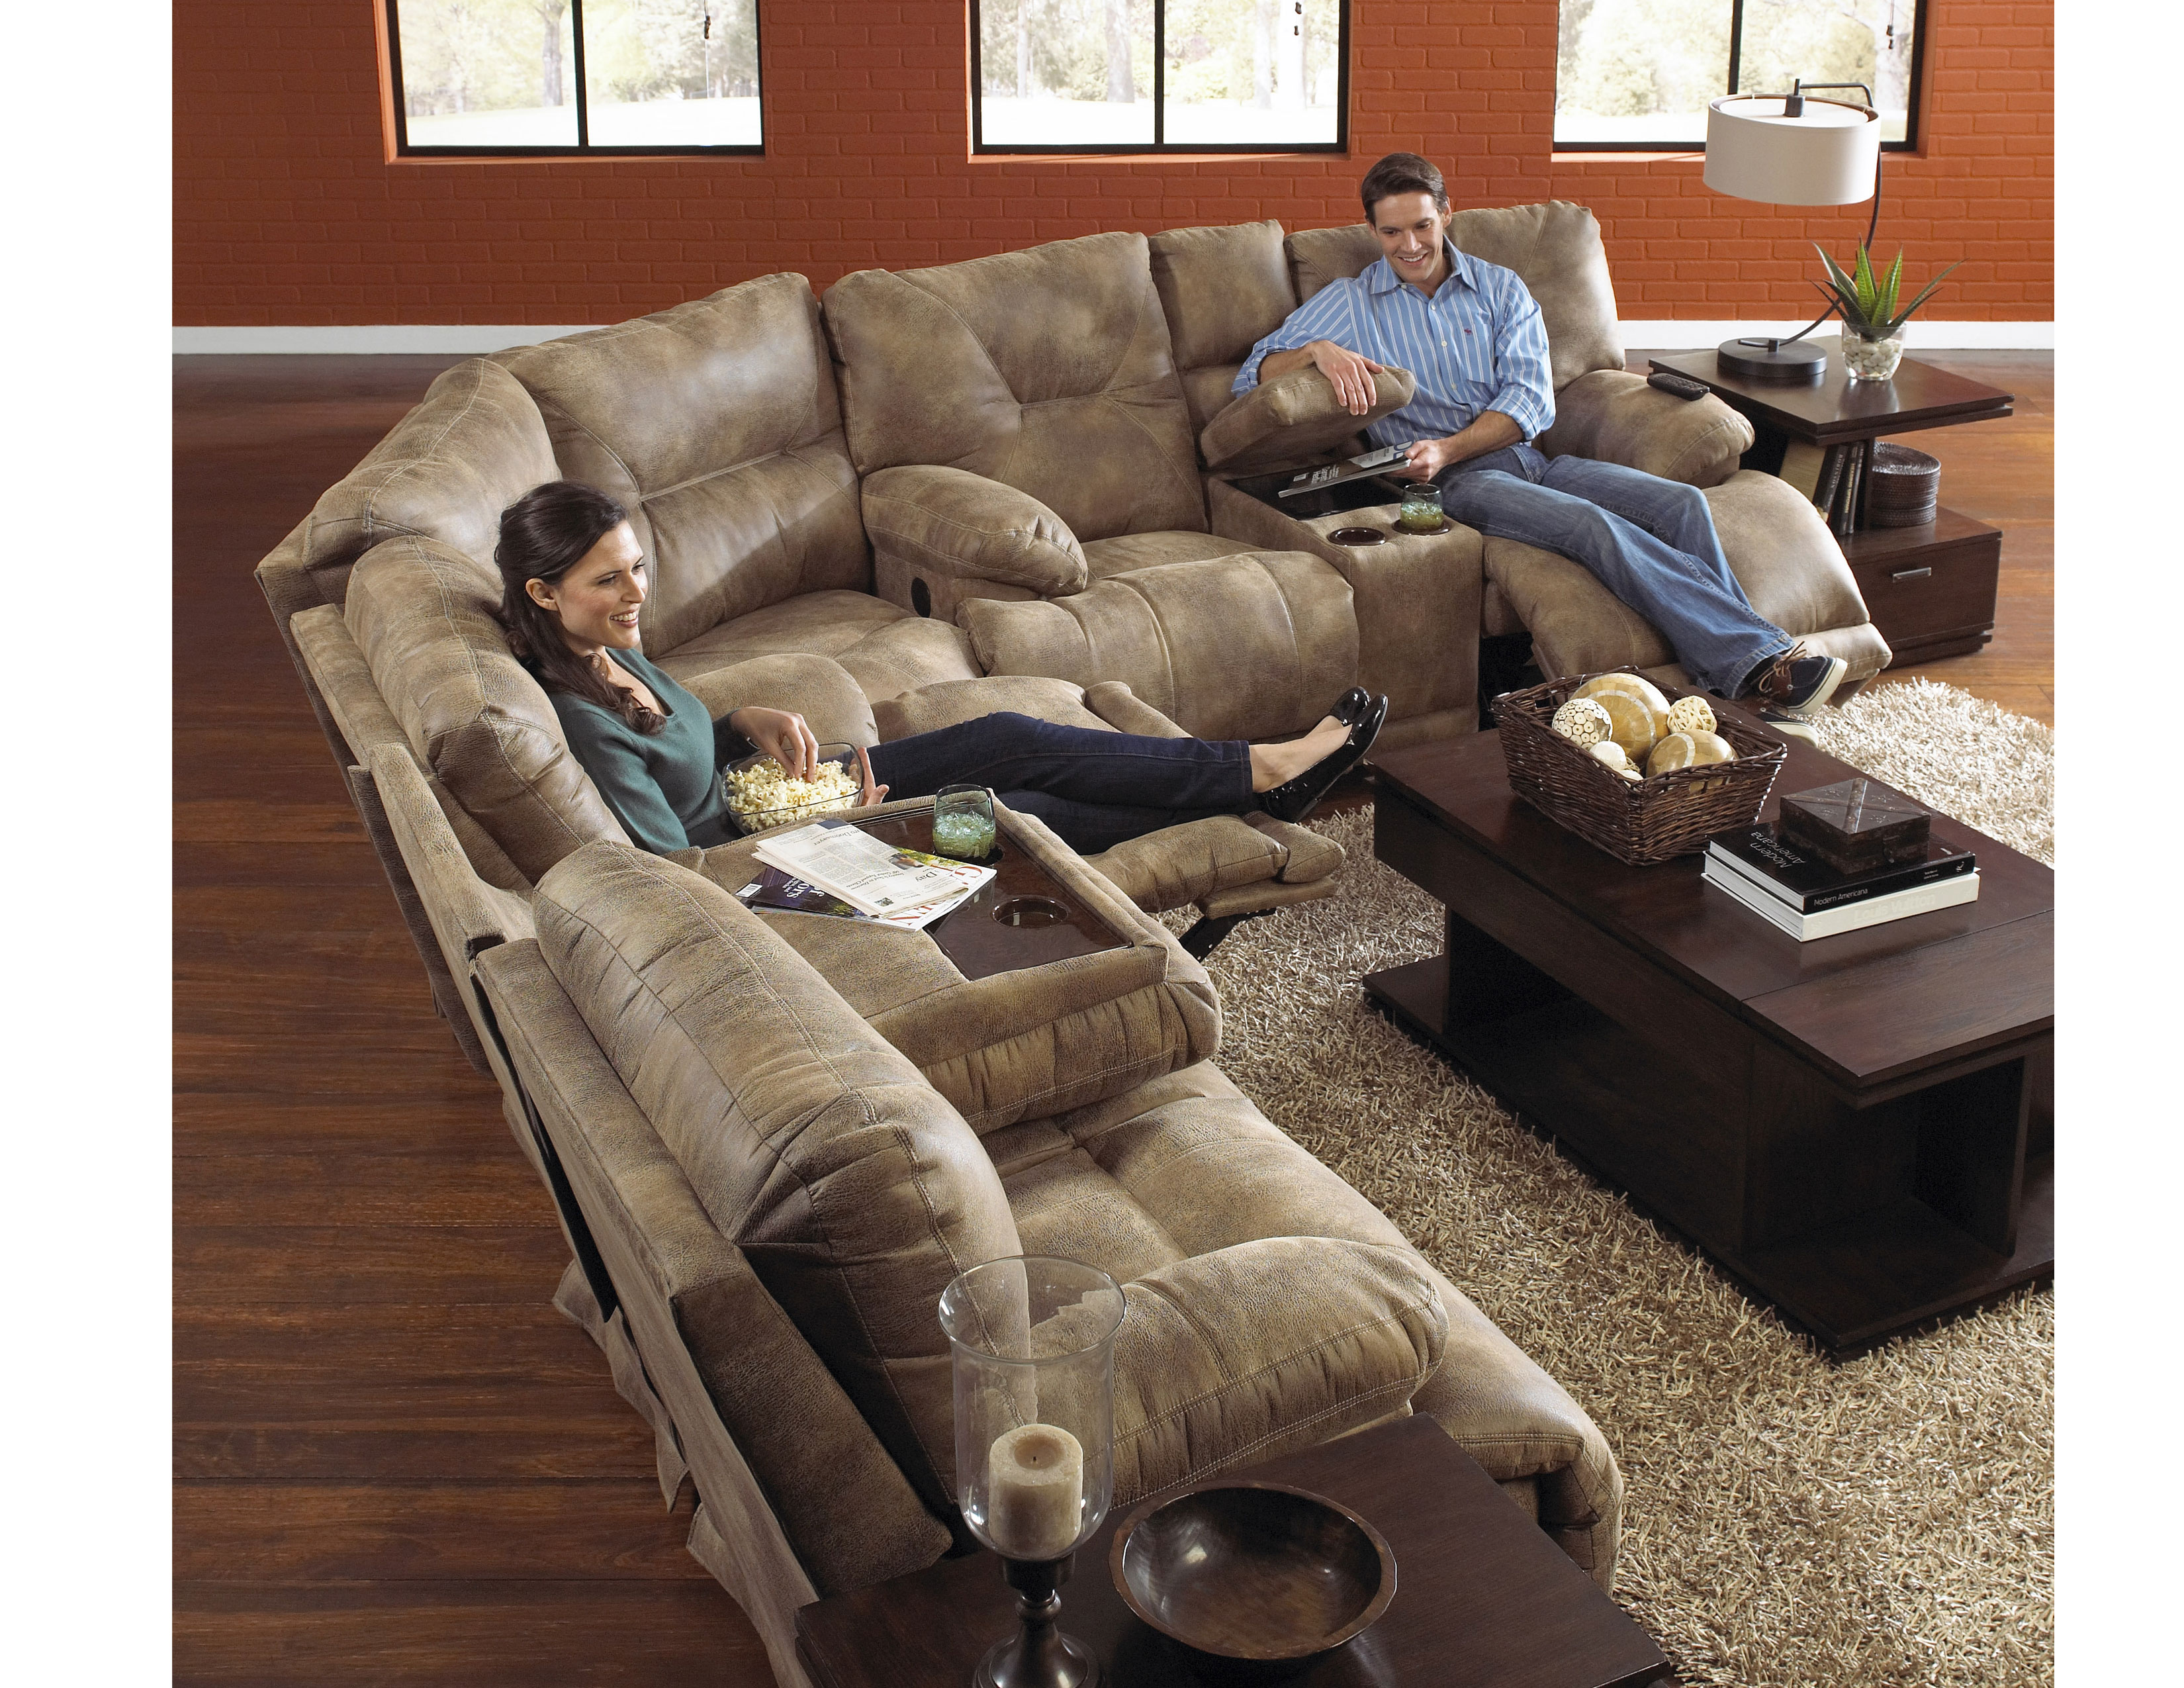 Admirable Voyager Layflat Reclining Sectional 3 Colors Sofas And Ncnpc Chair Design For Home Ncnpcorg